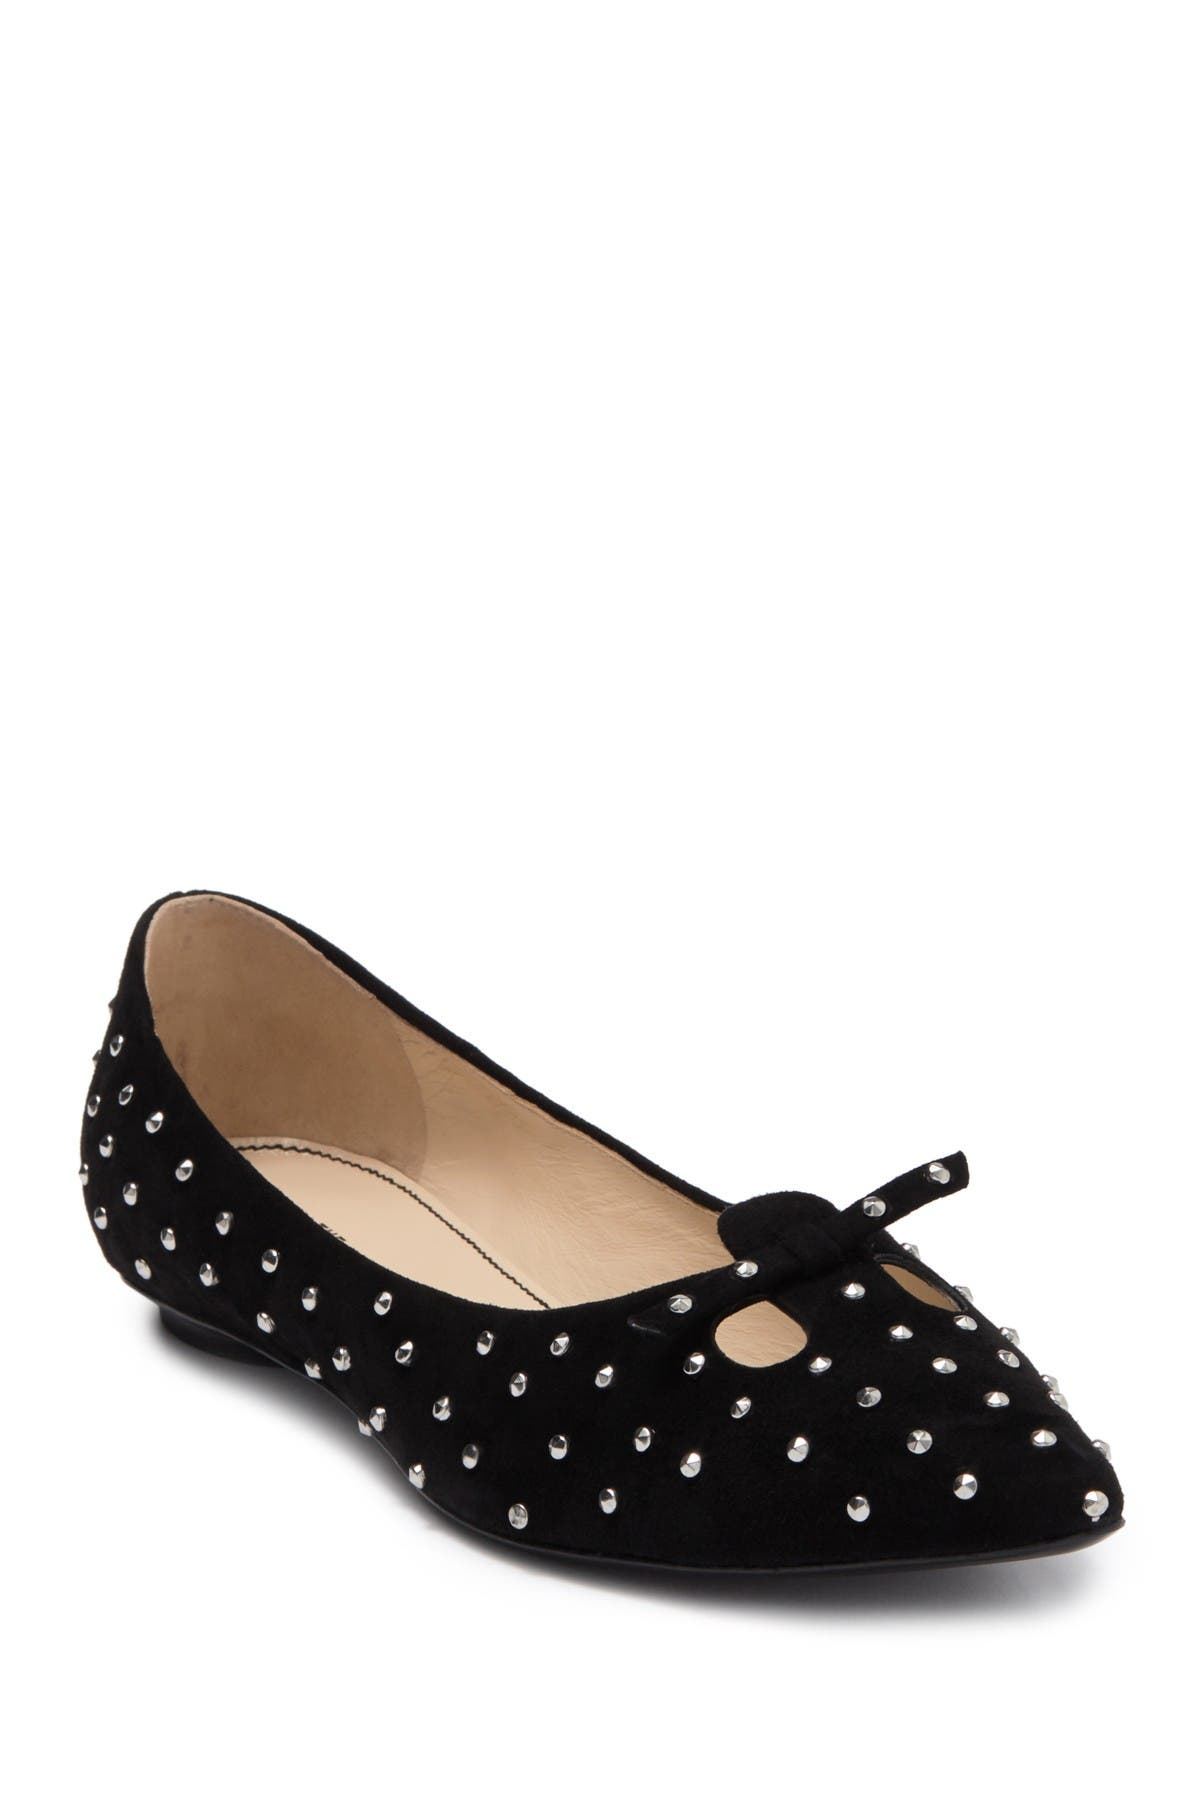 Image of Marc Jacobs The Studded Mouse Flat